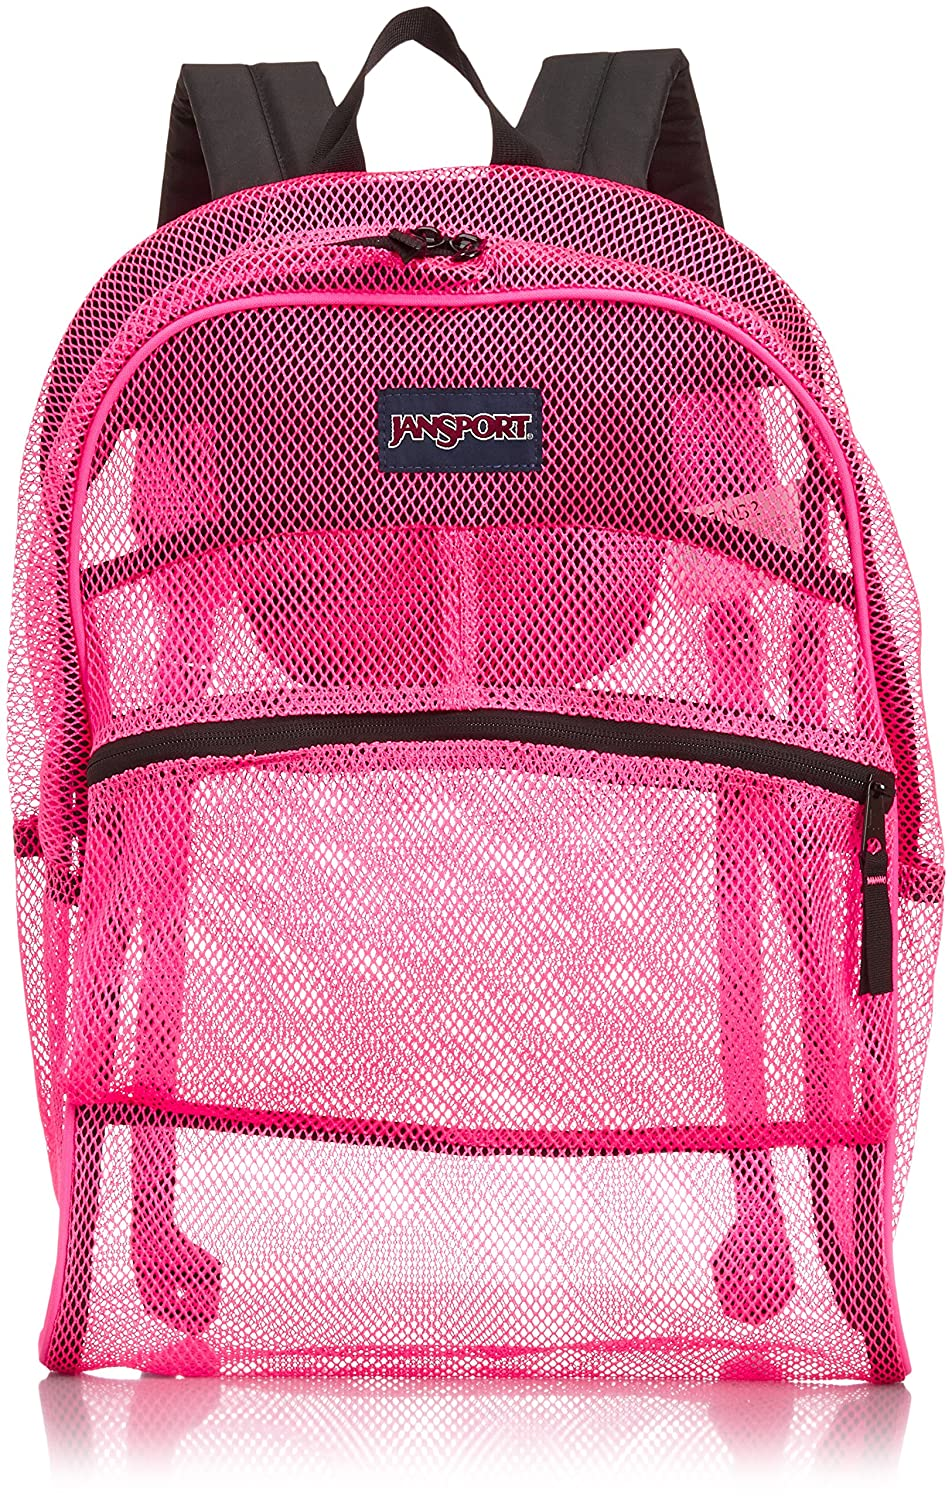 Neon Pink Jansport Backpacks For Girls